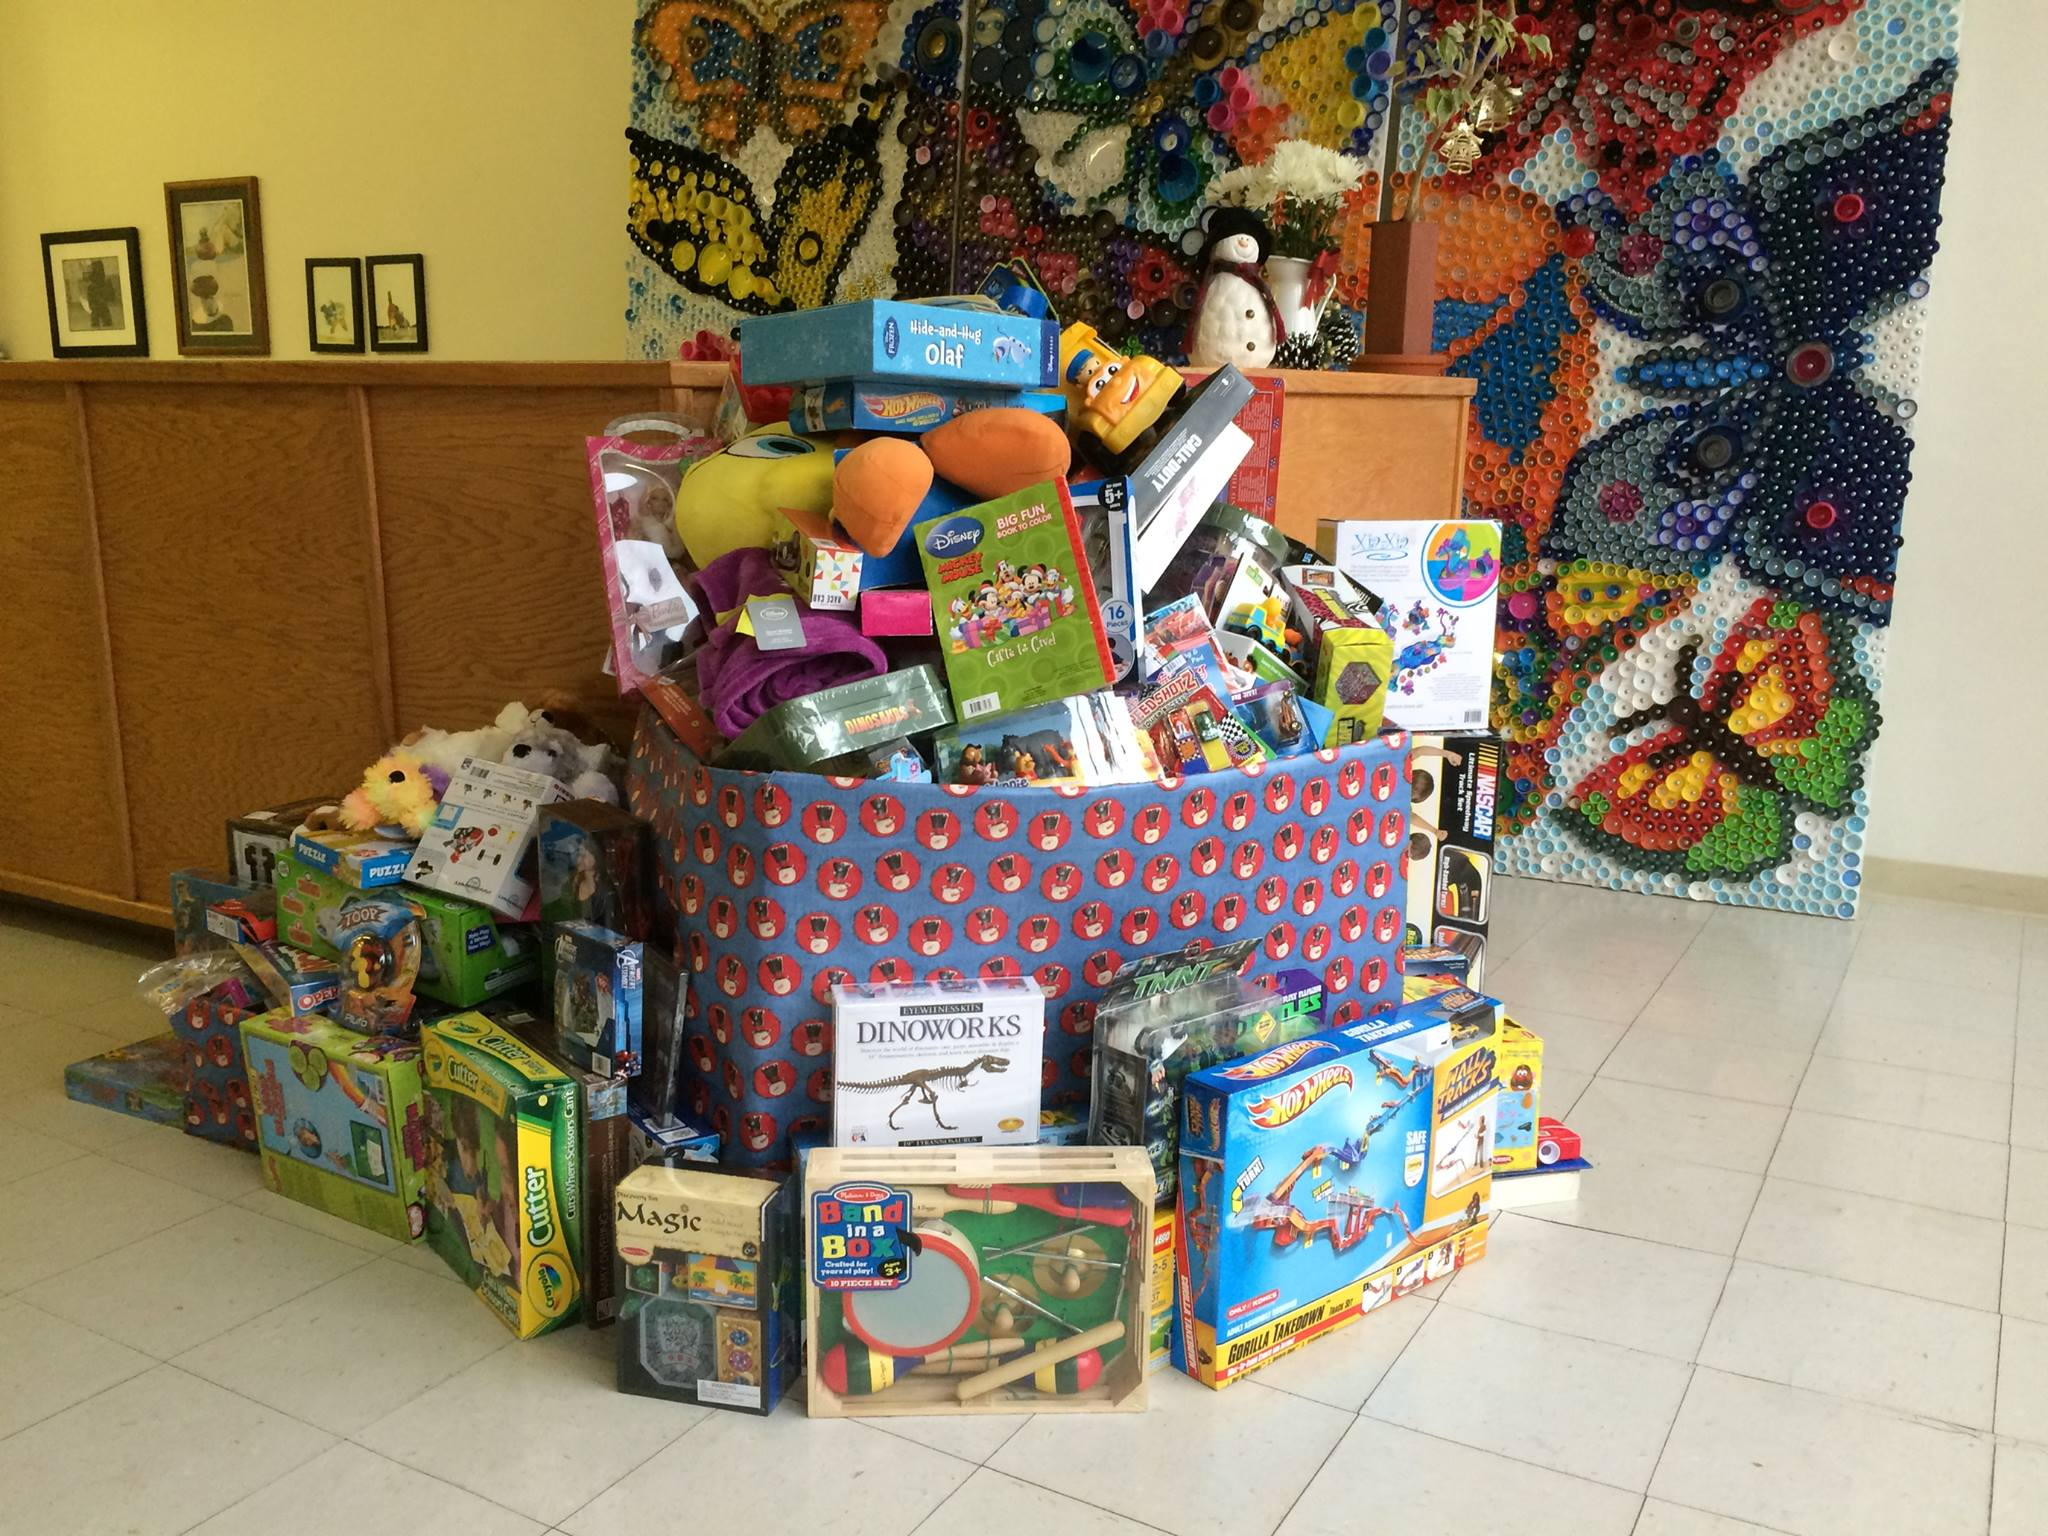 toys-for-tots-thedojo-toy-drive_23748290876_o.jpg